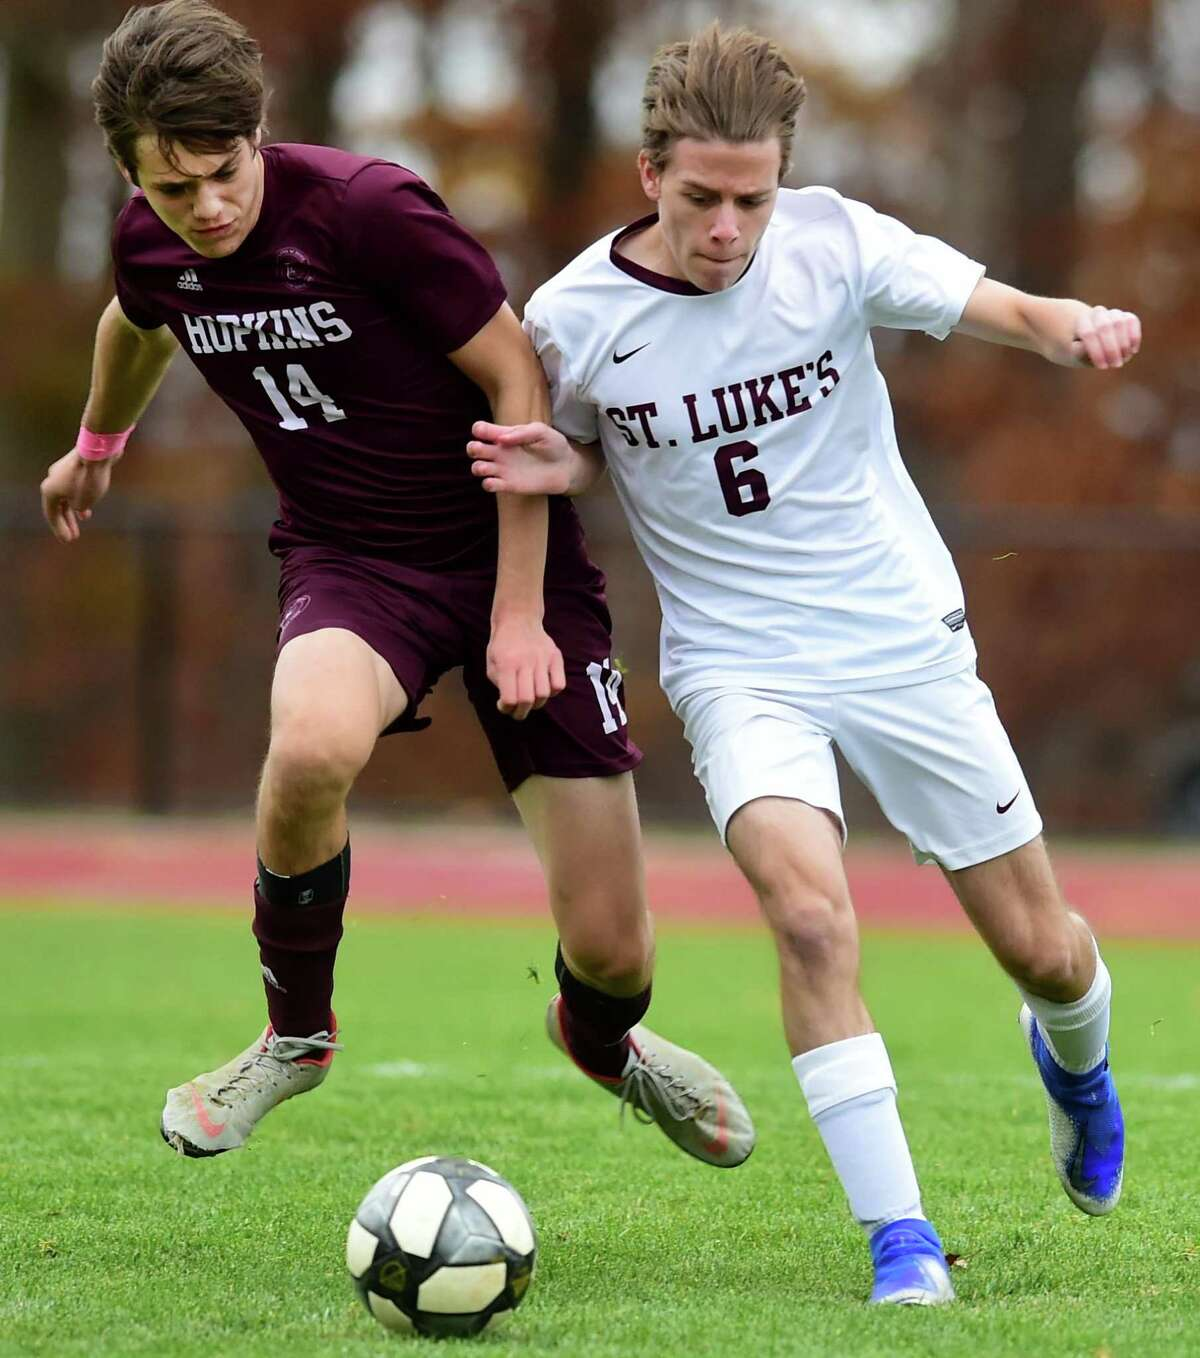 Hopkins' Zachary Bleil, left, and St. Luke's Pierce Leclerc chase the ball during the first half of the Fairchester Athletic Association Championship game Thursday in New Haven.